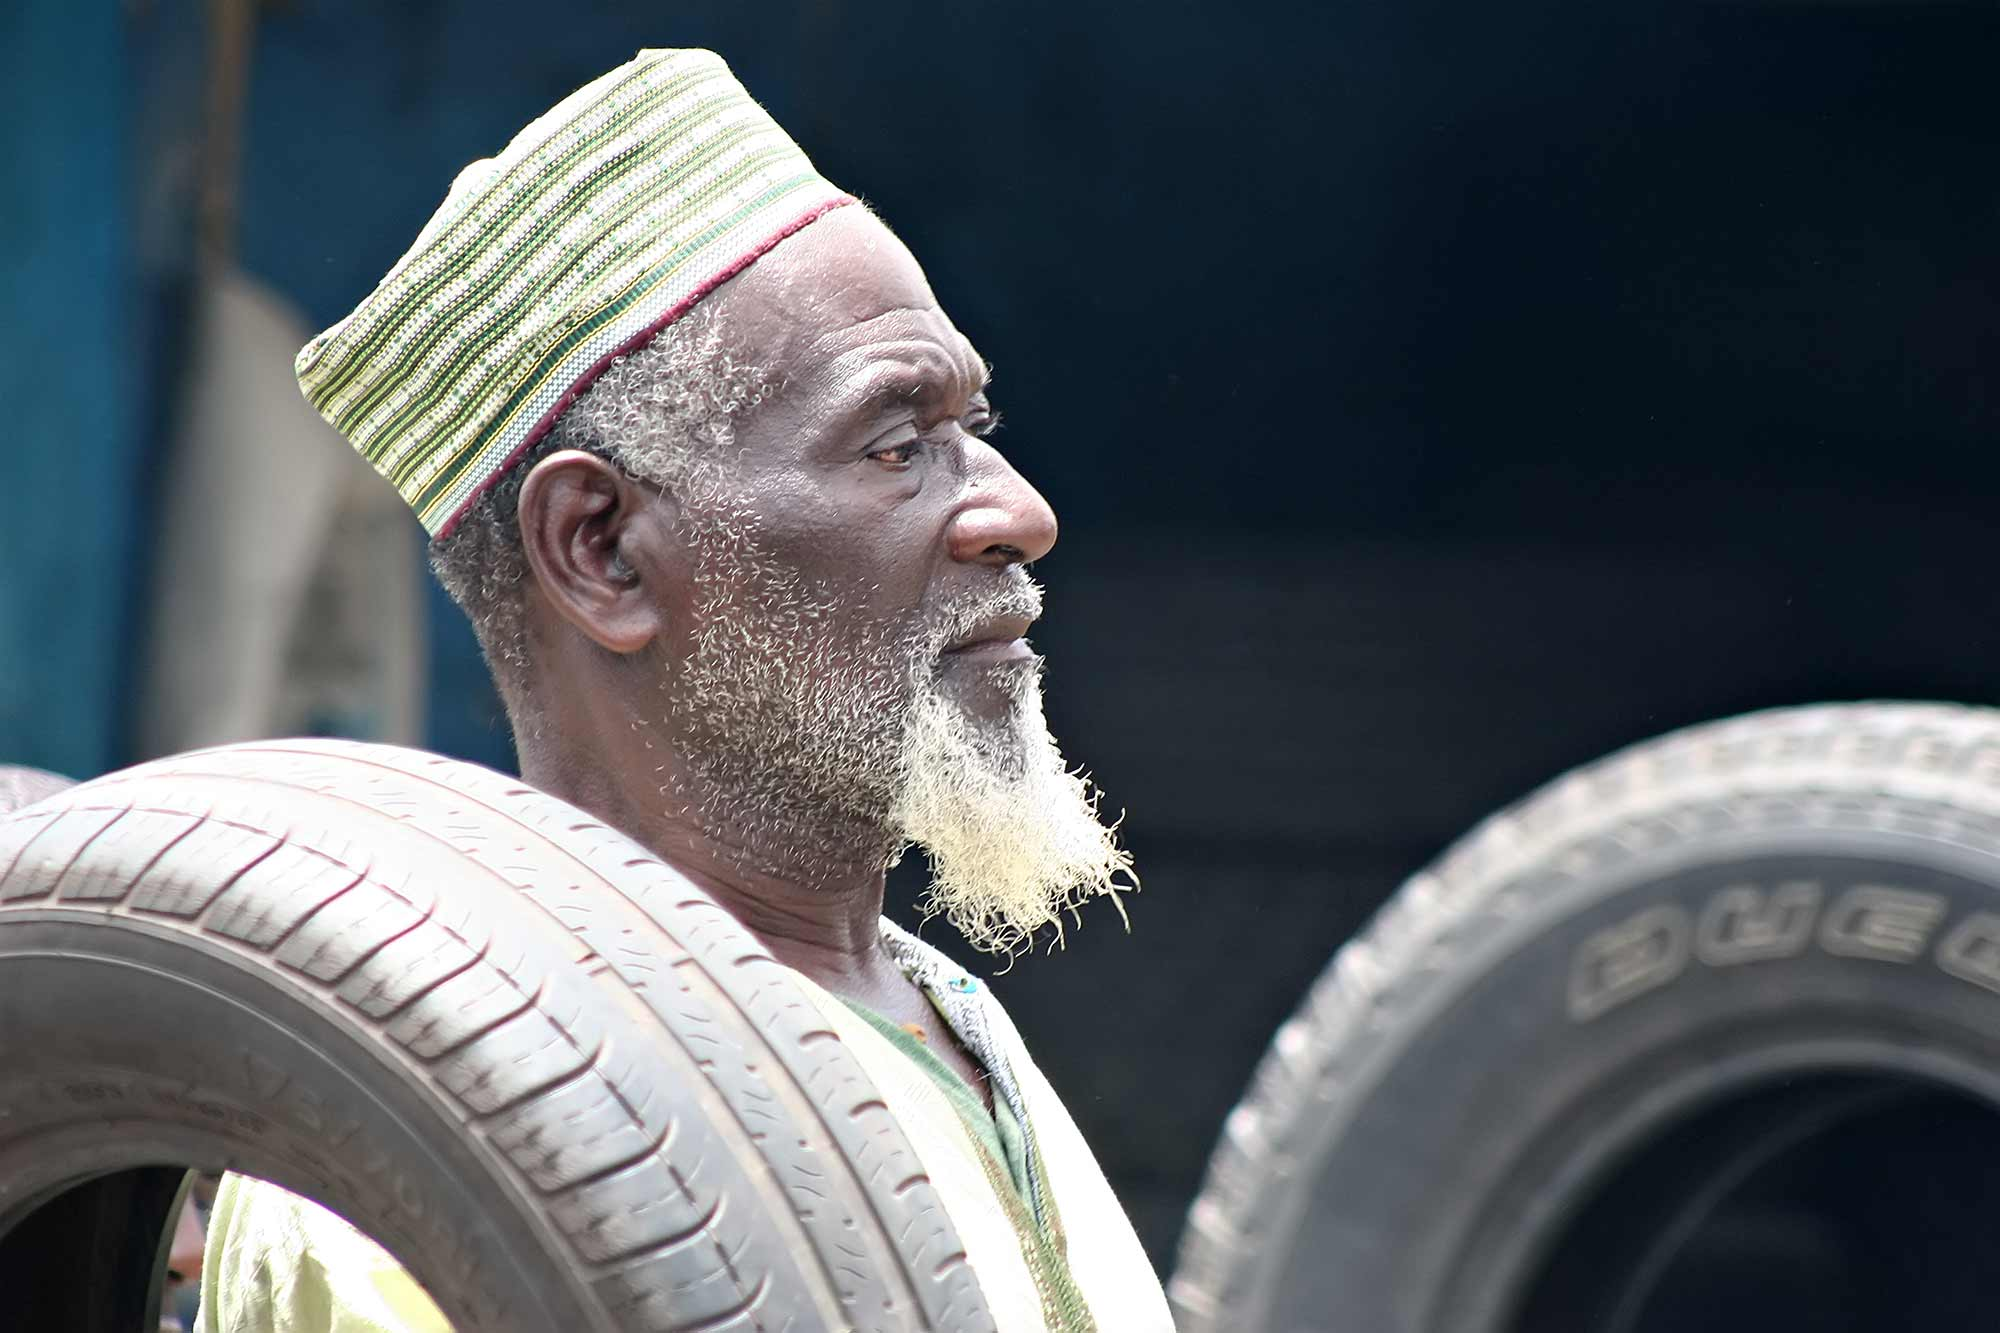 man-with-tires-accra-ghana